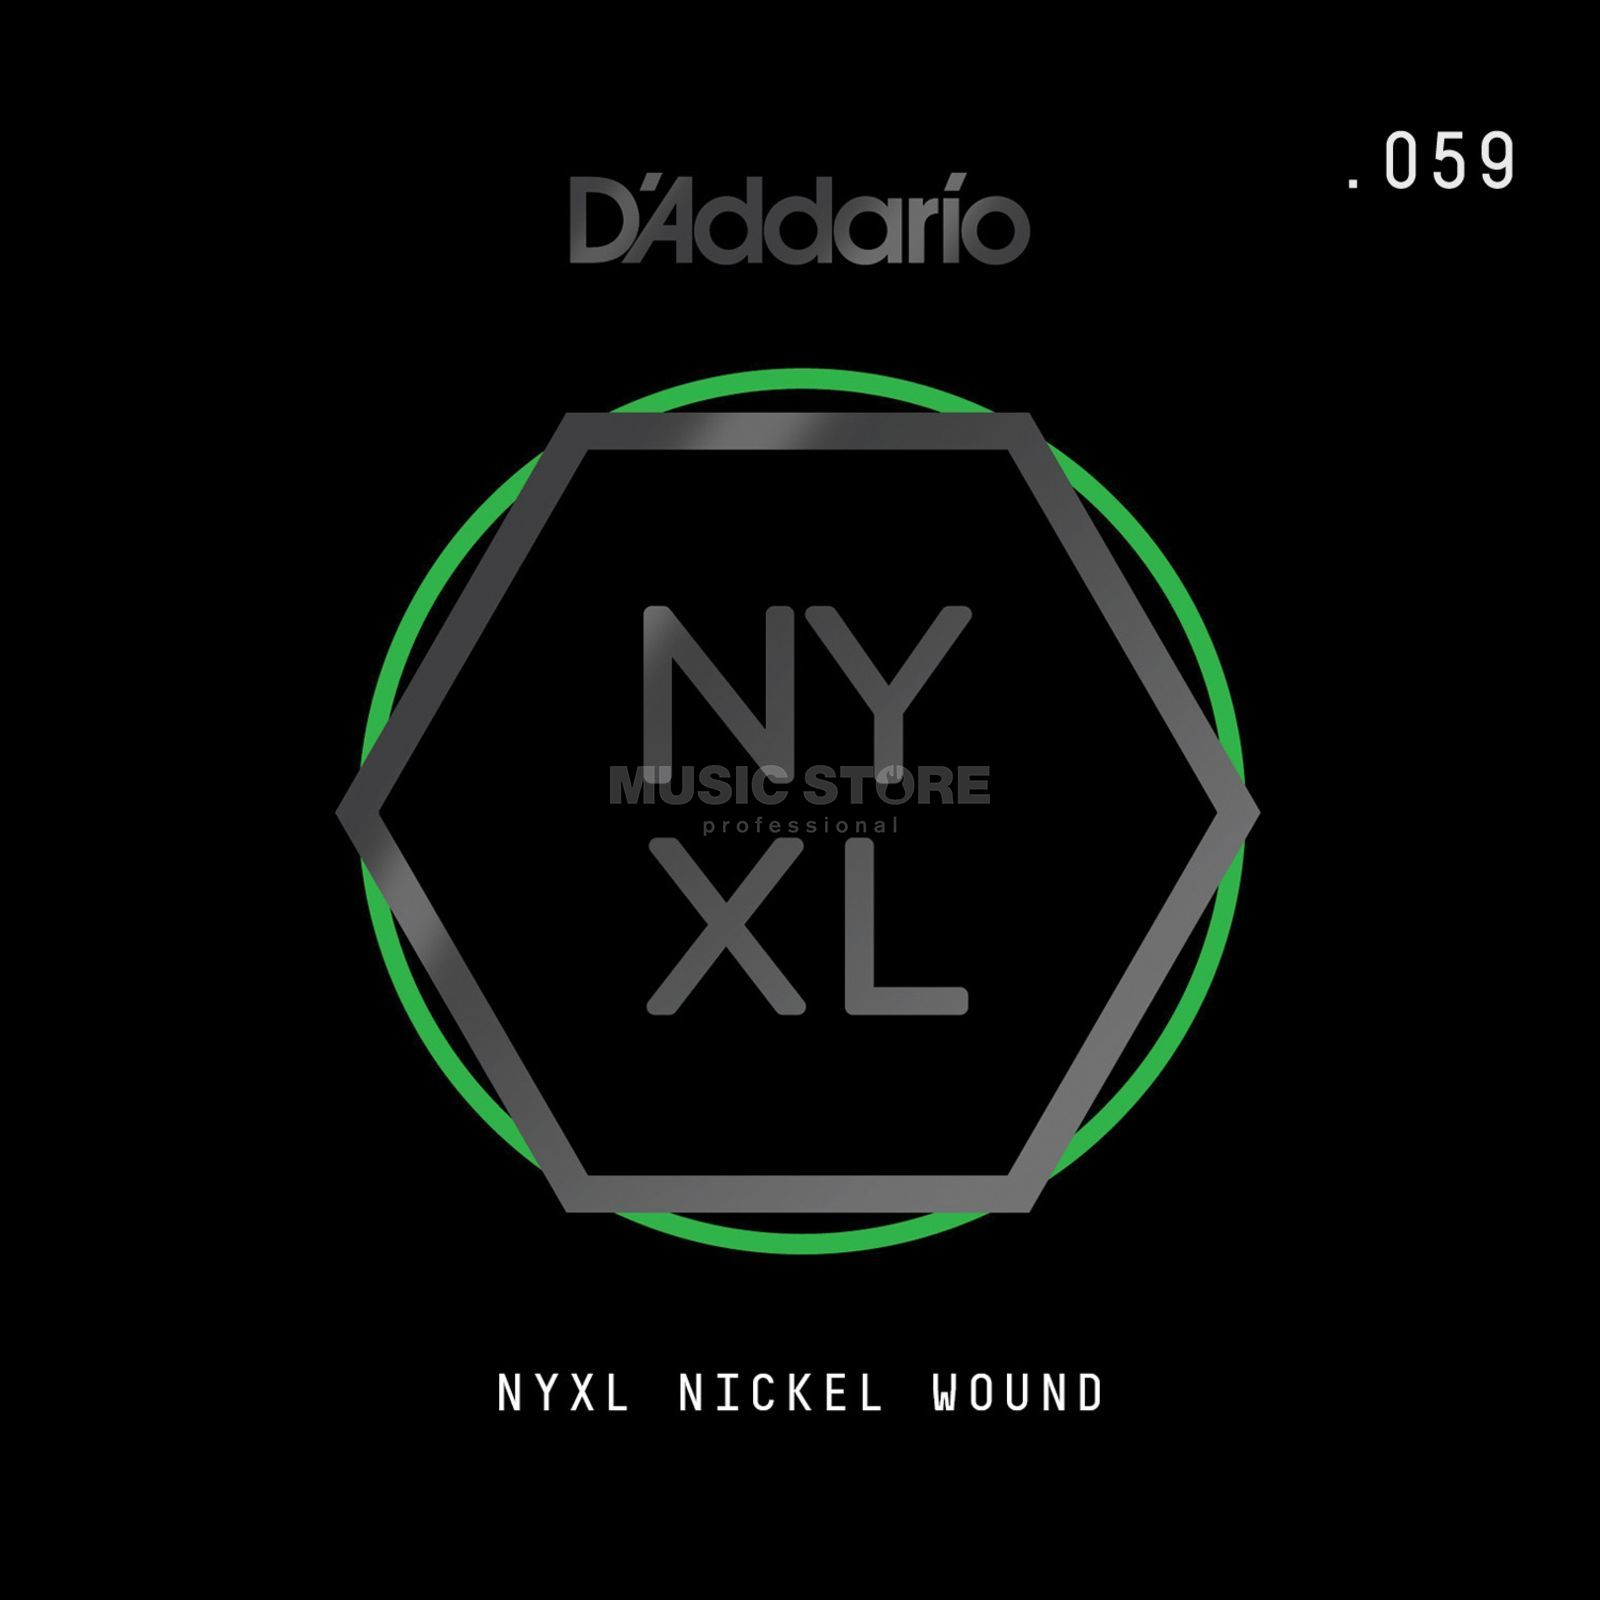 D'Addario NYNW059 Single String Nickel Wound Immagine prodotto